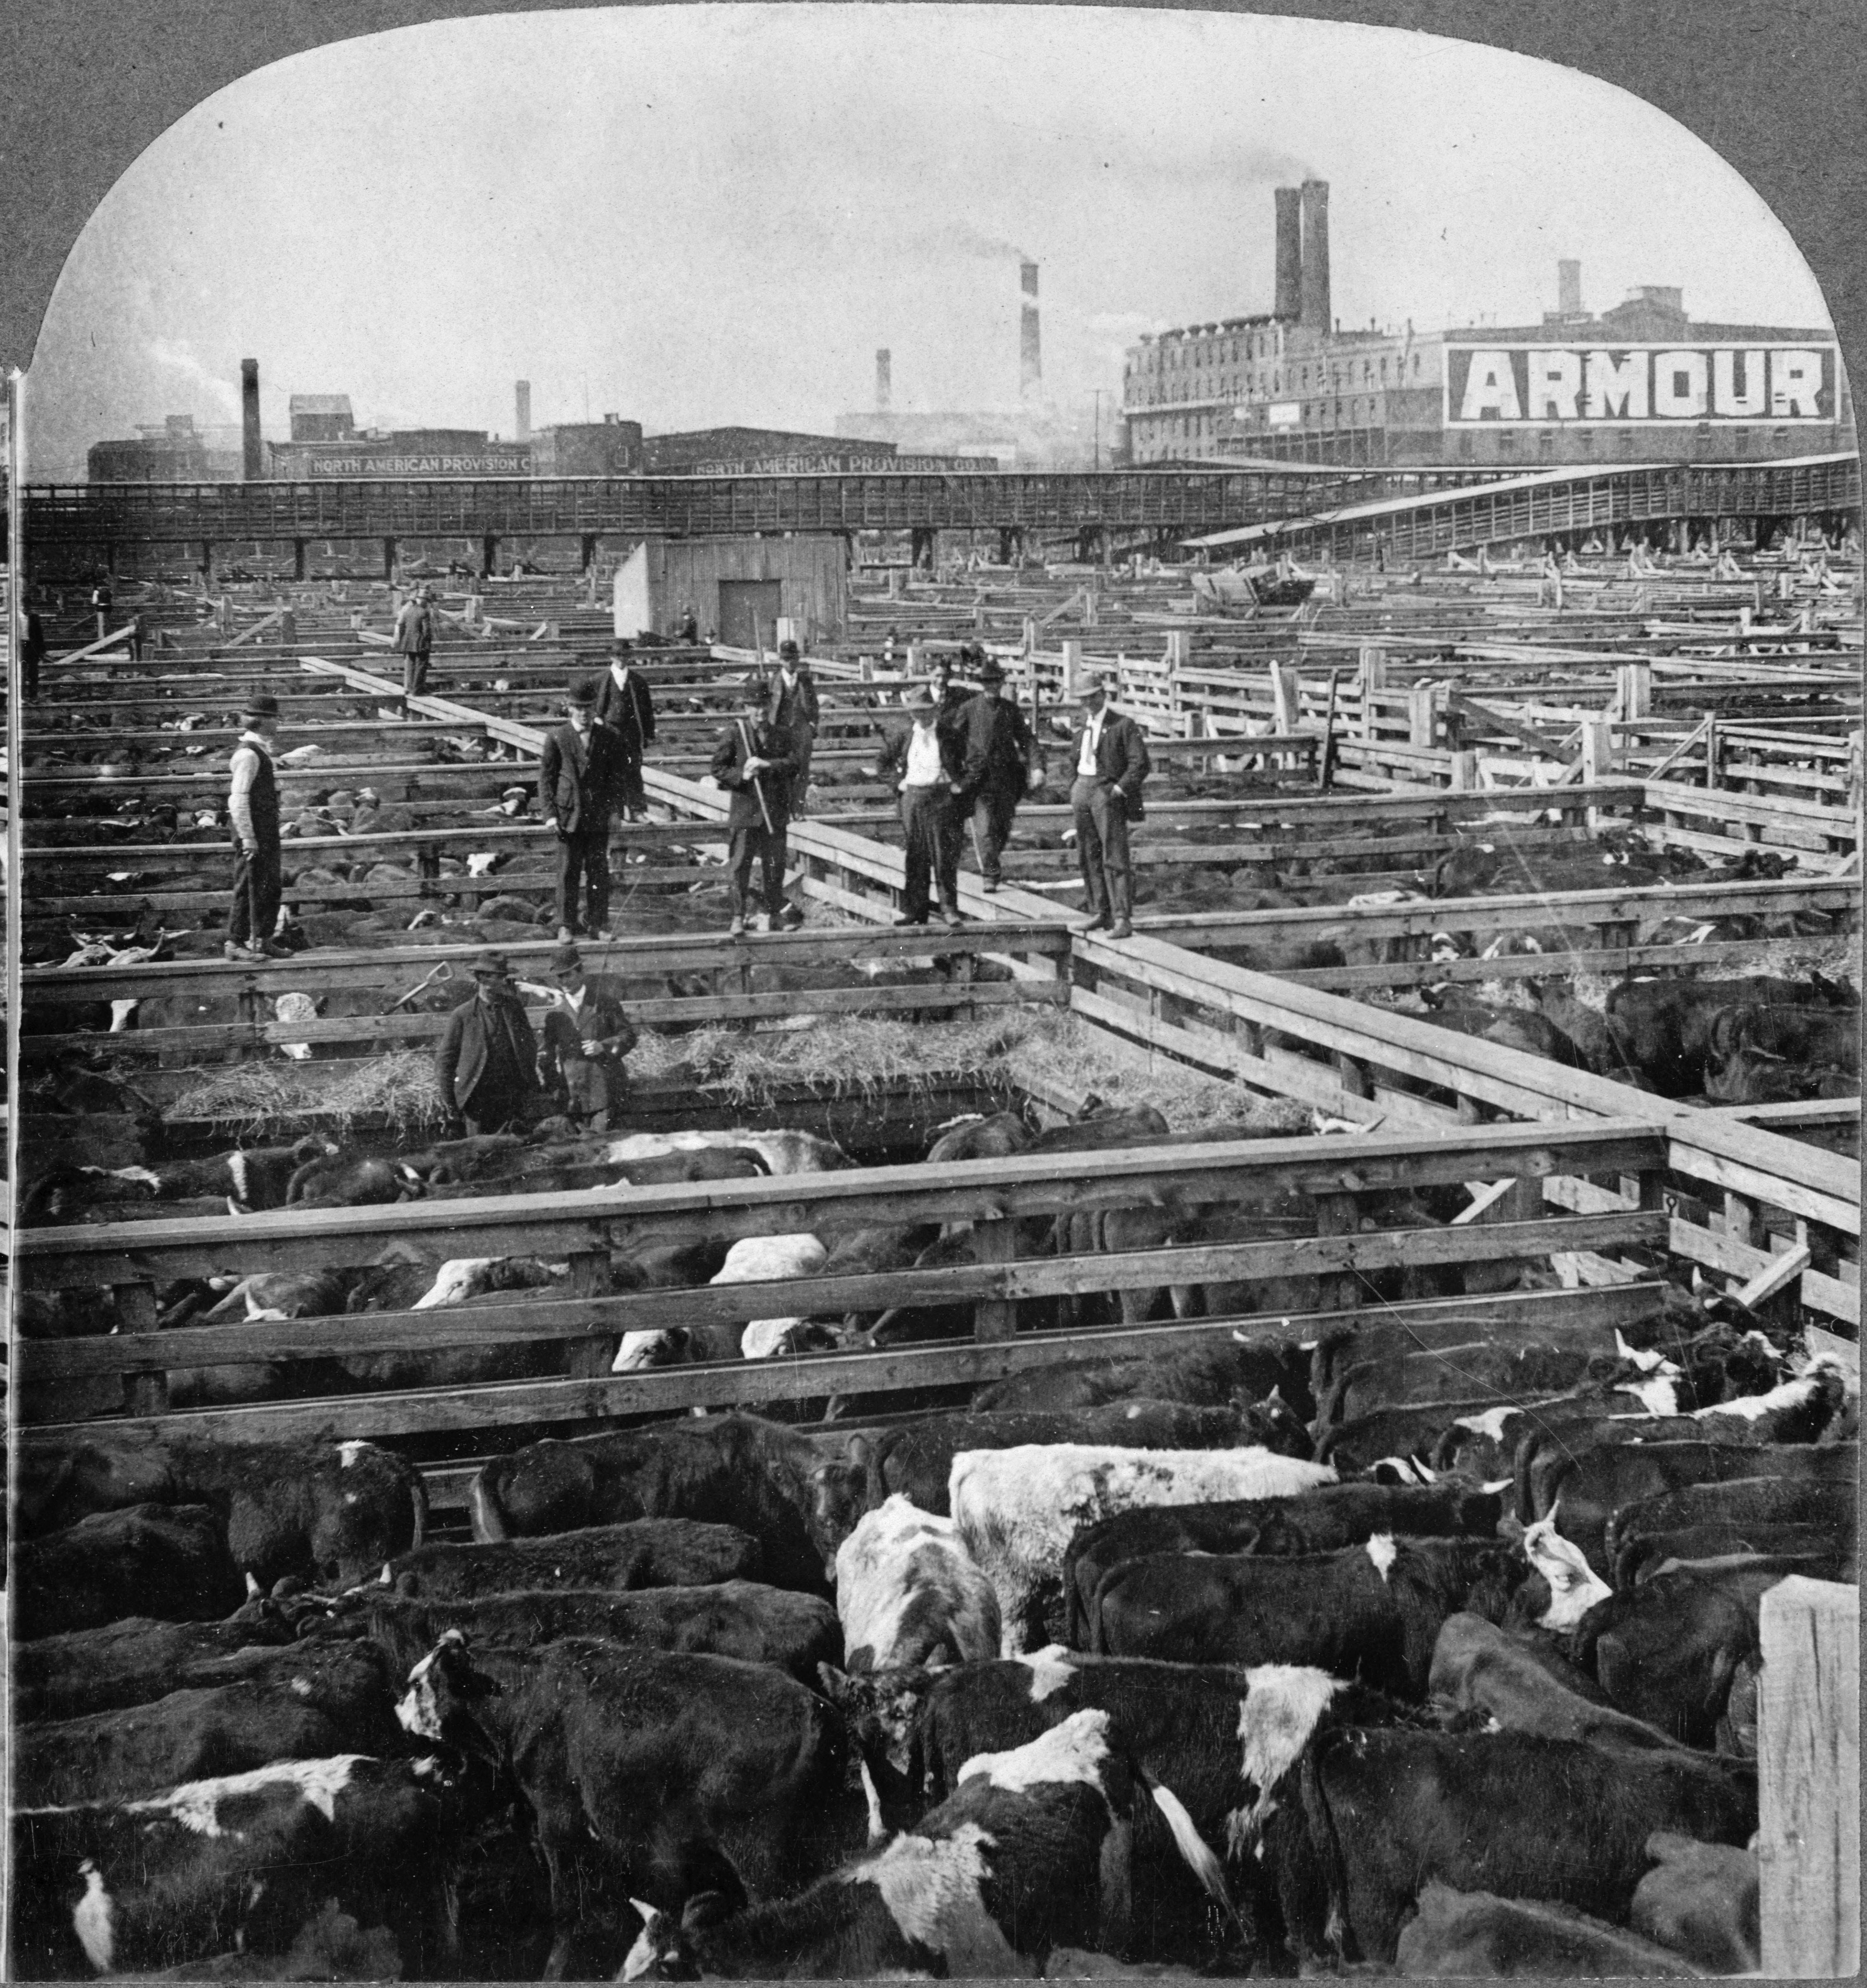 http://upload.wikimedia.org/wikipedia/commons/d/d0/Chicago_stockyards_cattle_pens_men_1909.jpg